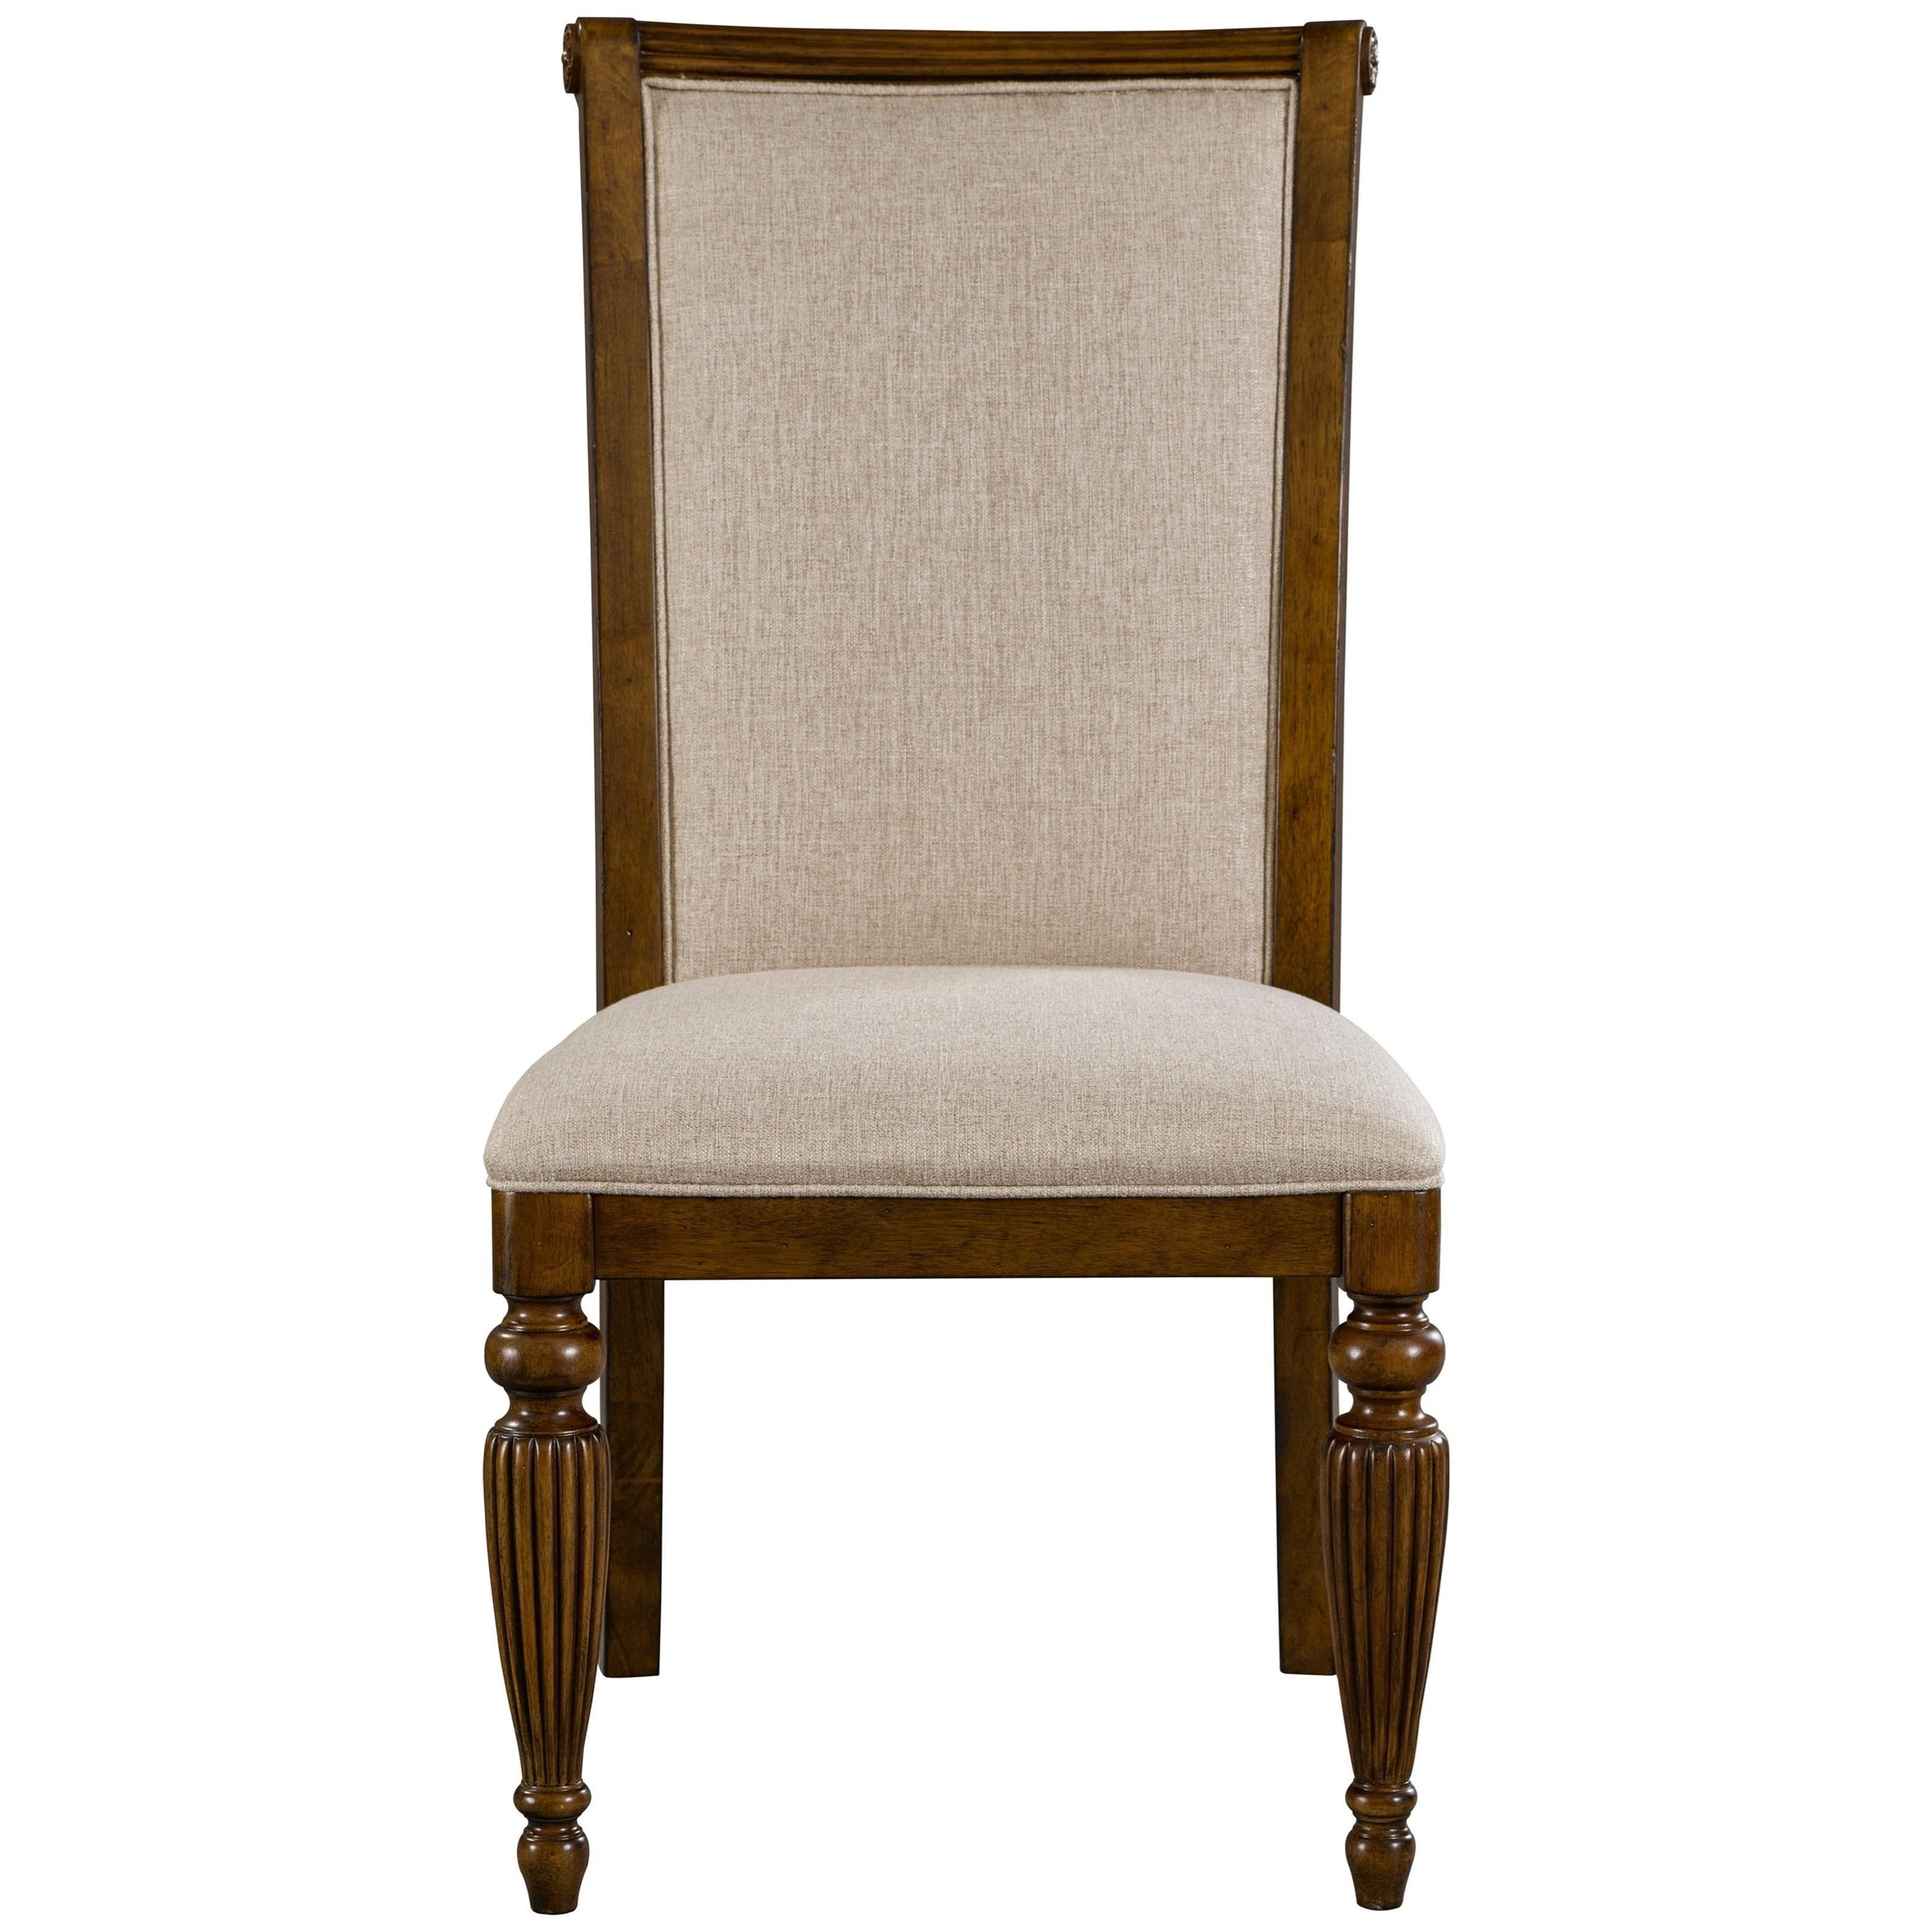 Broyhill Furniture Amalie Bay Upholstered Side Chair - Item Number: 4548-581